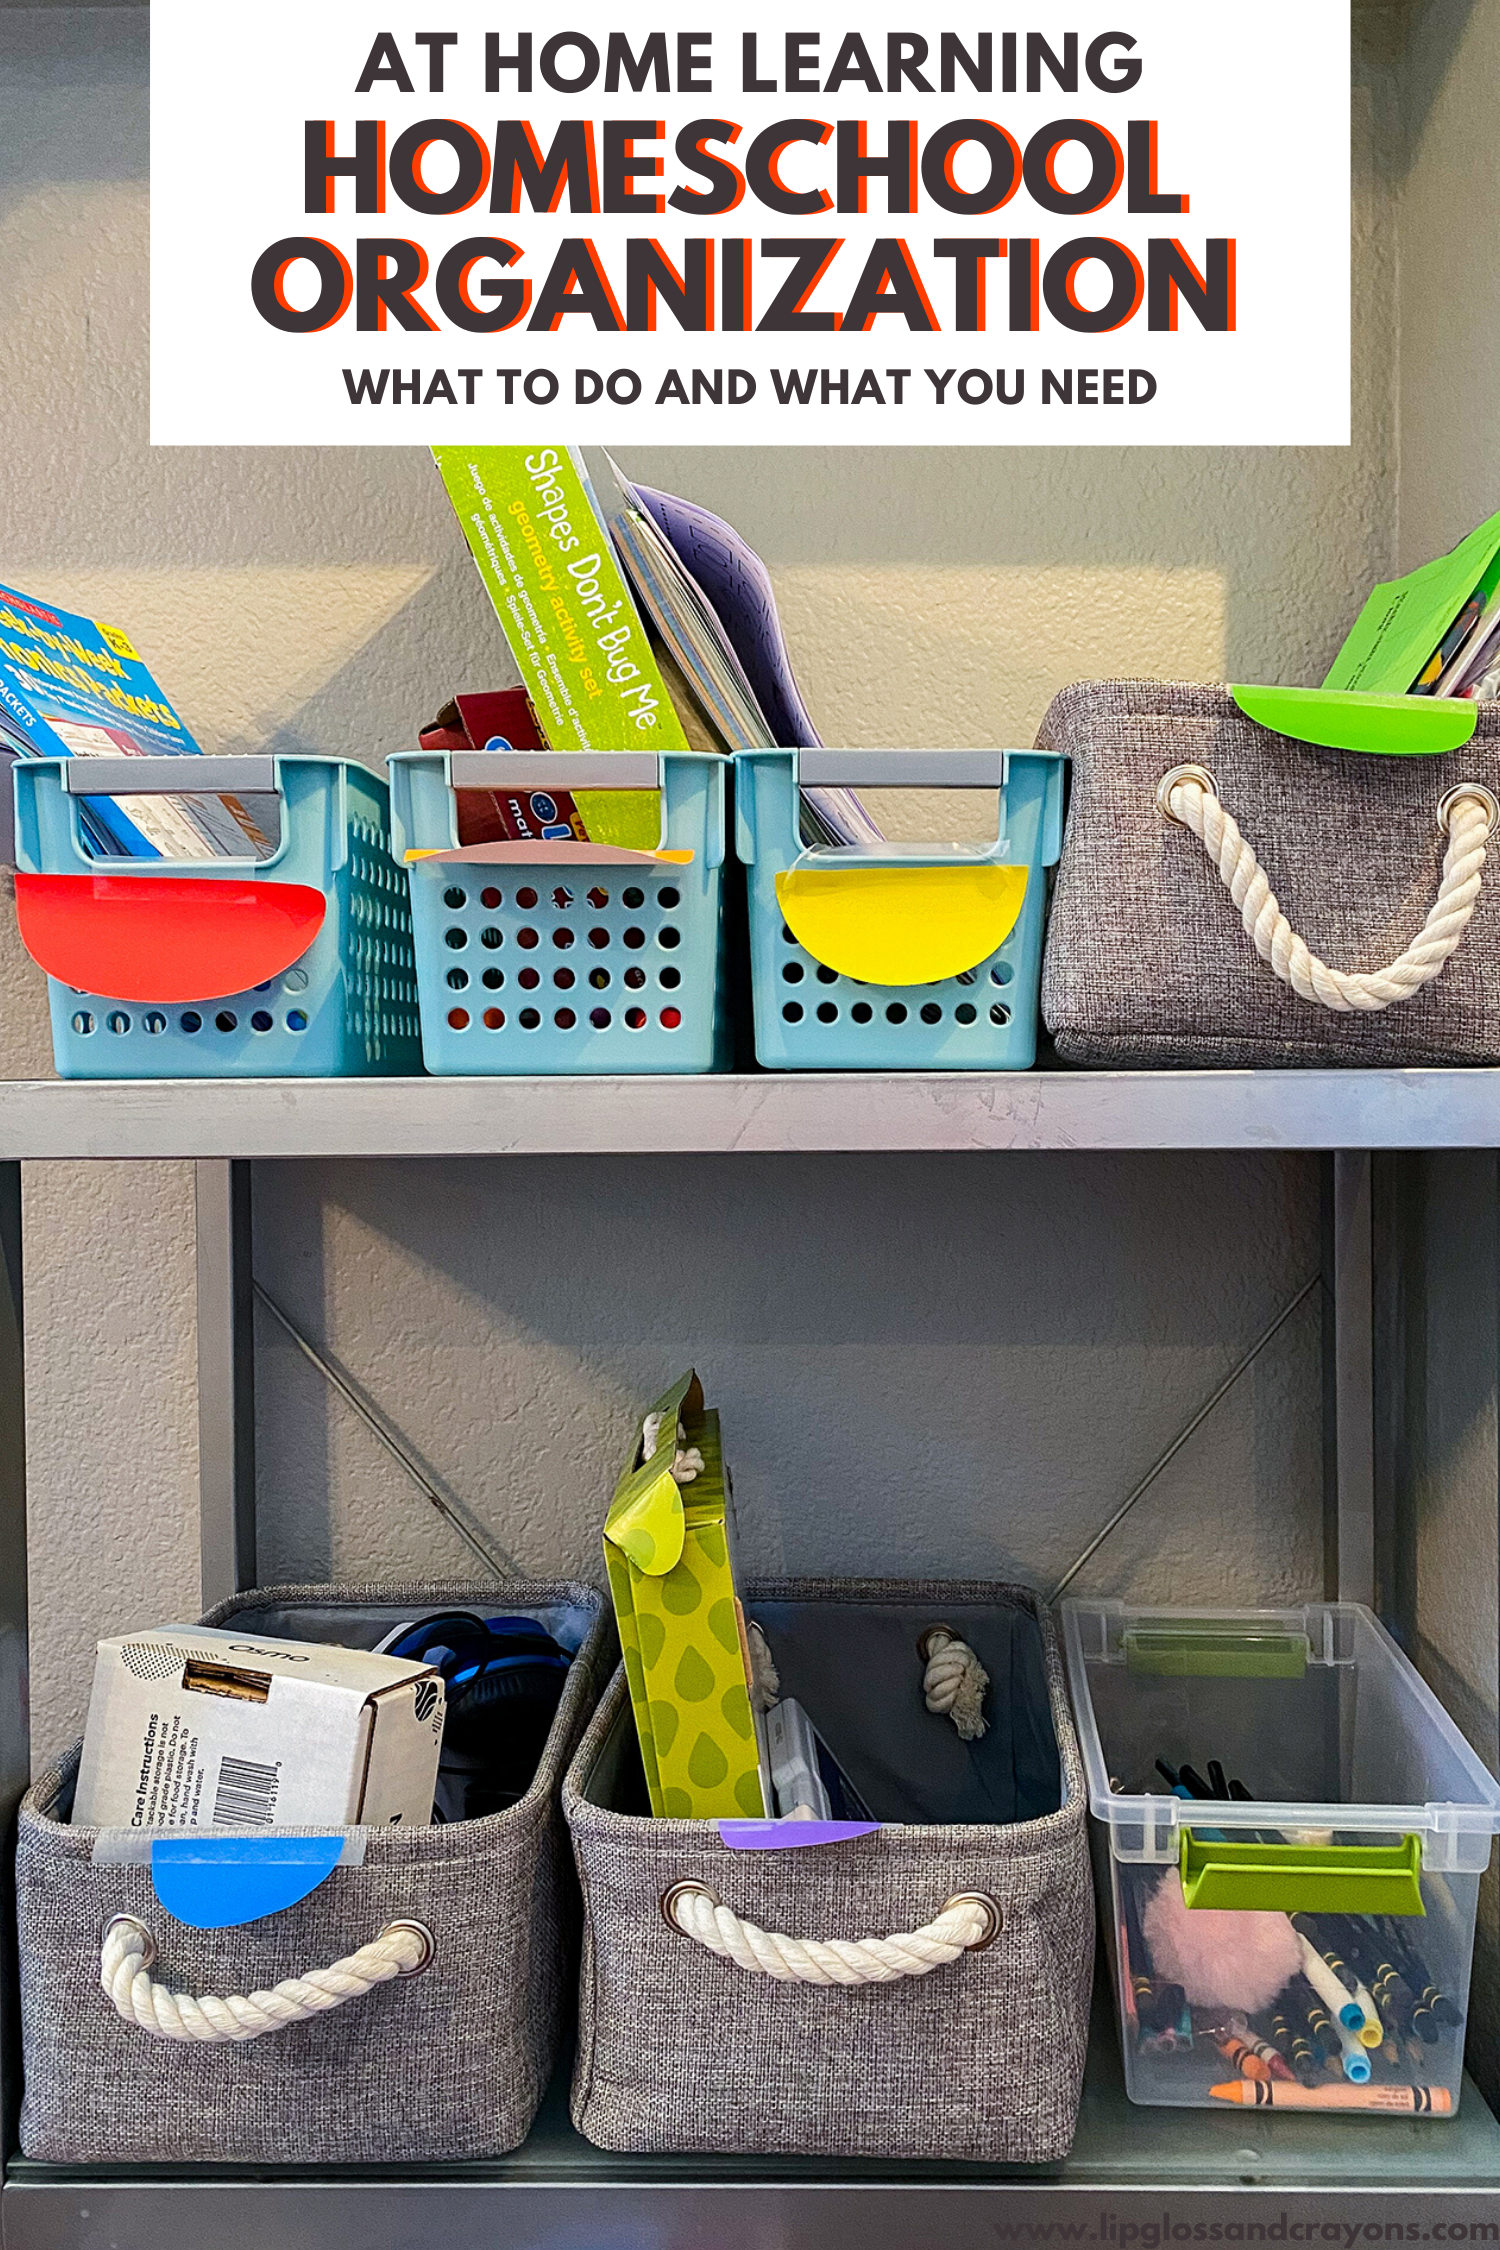 Are you suddenly homeschooling? And looking for organization ideas? This Homeschool Organization system will help your child be more independent and help YOU keep everything from taking over the house!